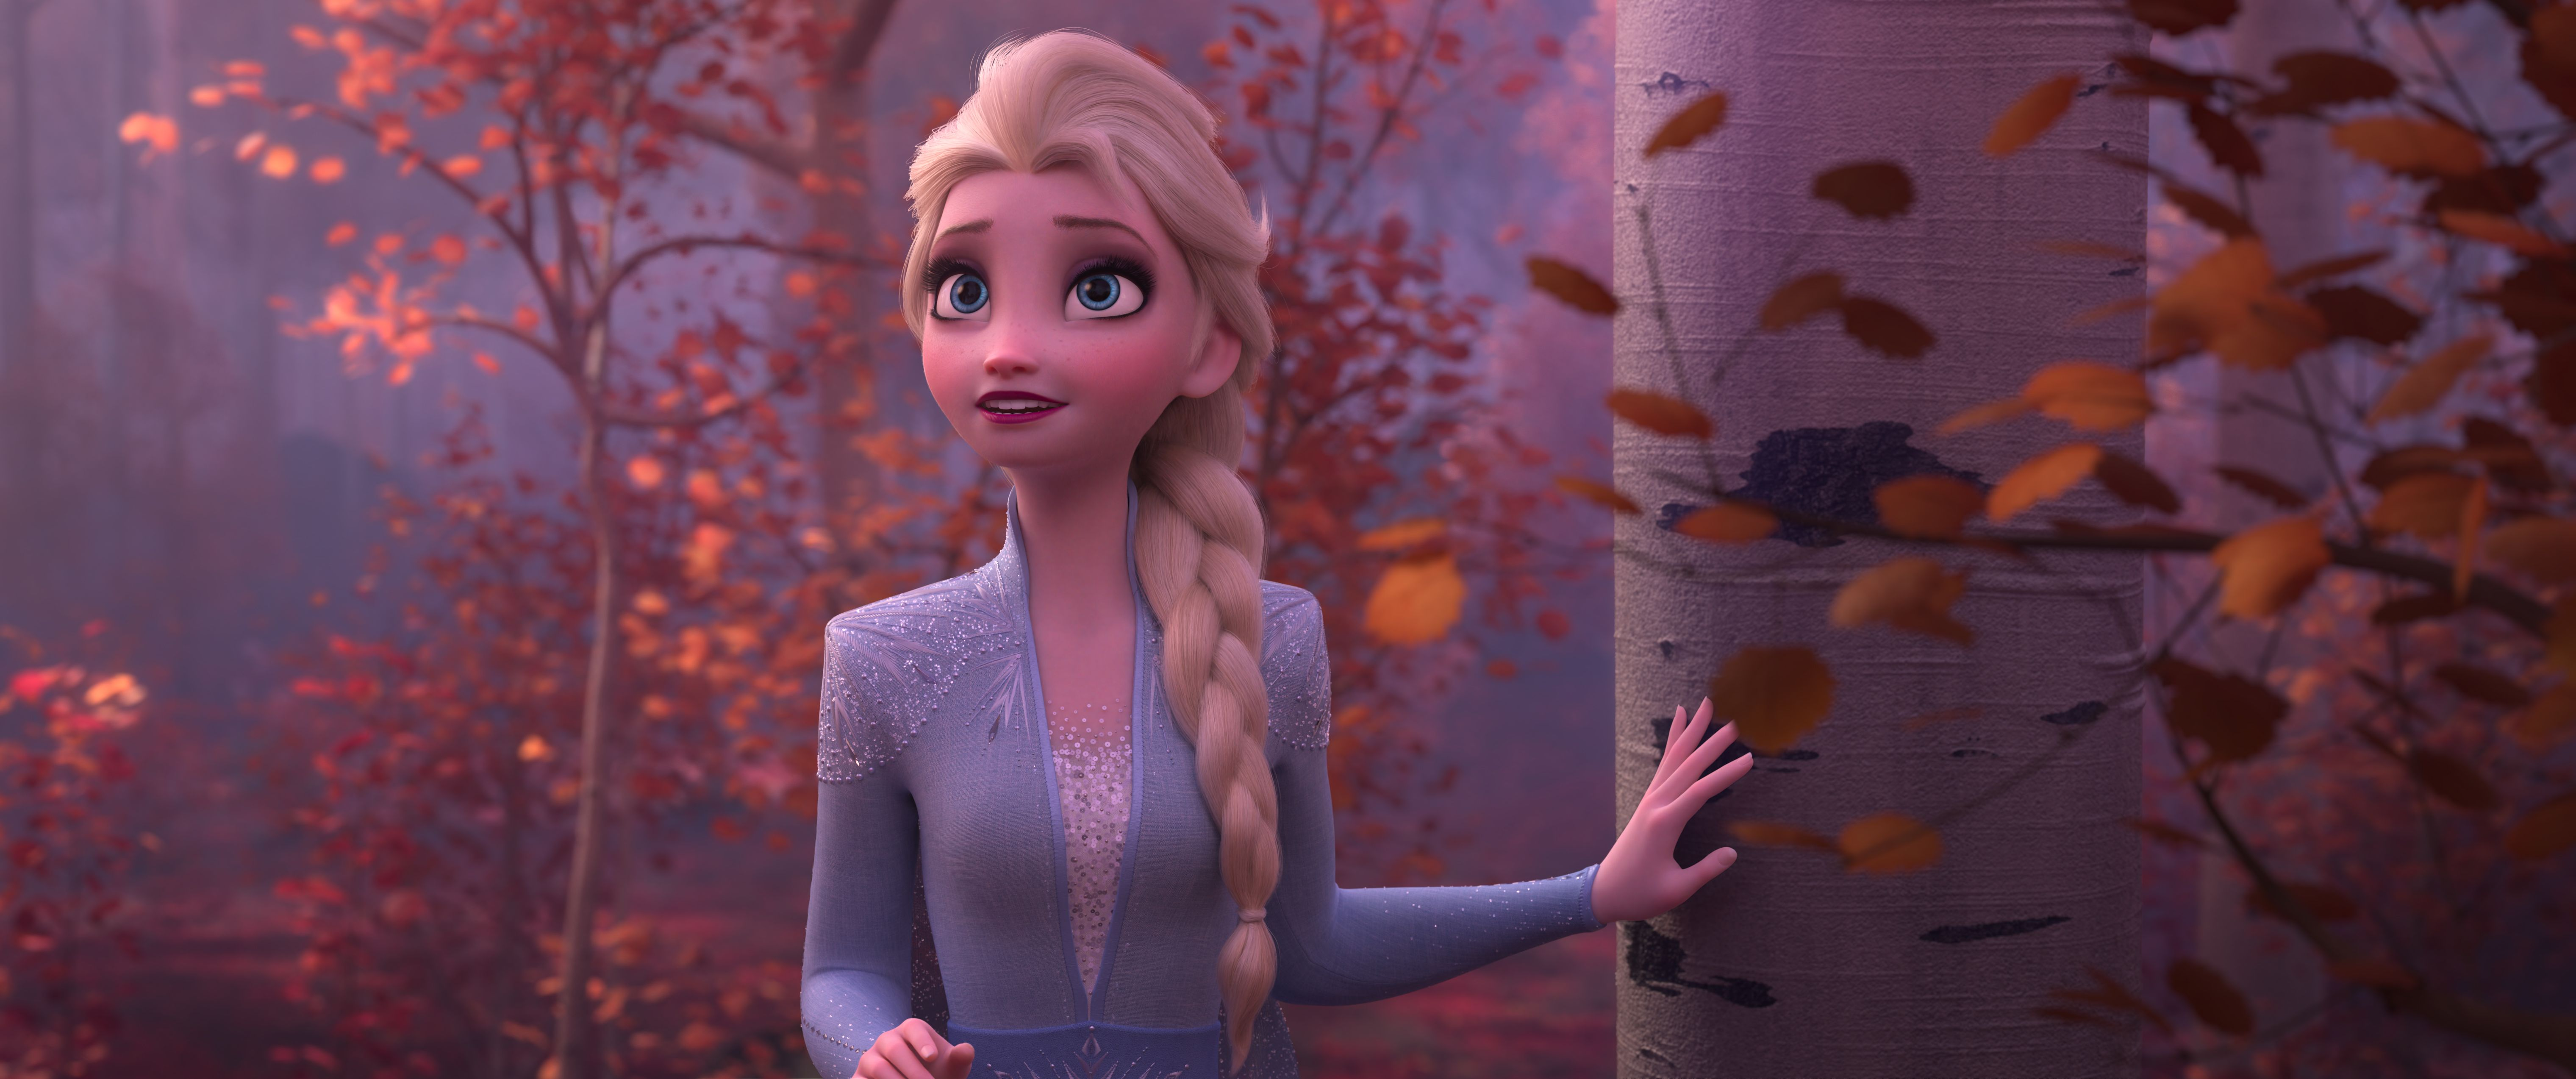 Frozen 2 review: A winning sequel that will satisfy fans of the original